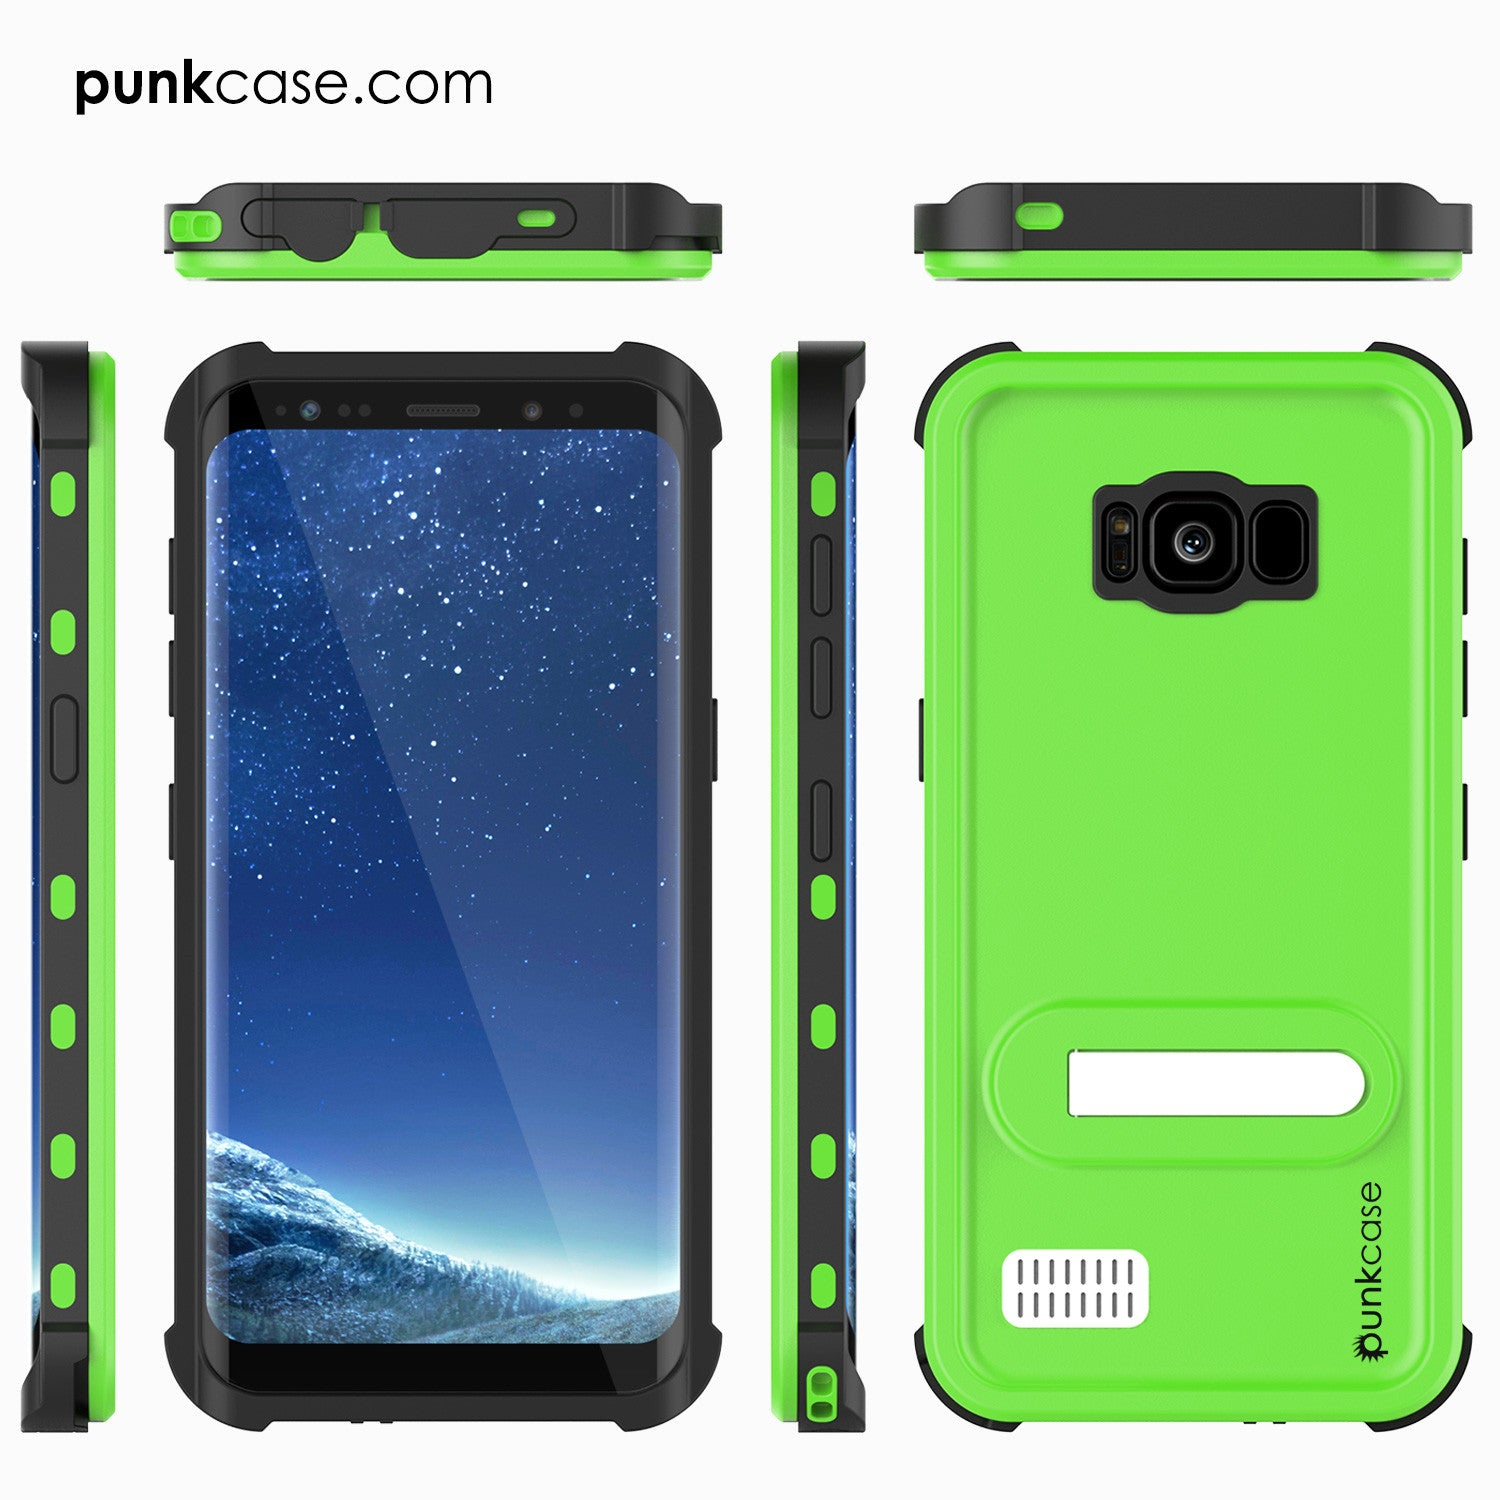 Galaxy S8 Plus Waterproof Case, Punkcase [KickStud Series] [Slim Fit] [IP68 Certified] [Shockproof] [Snowproof] Armor Cover [GREEN]